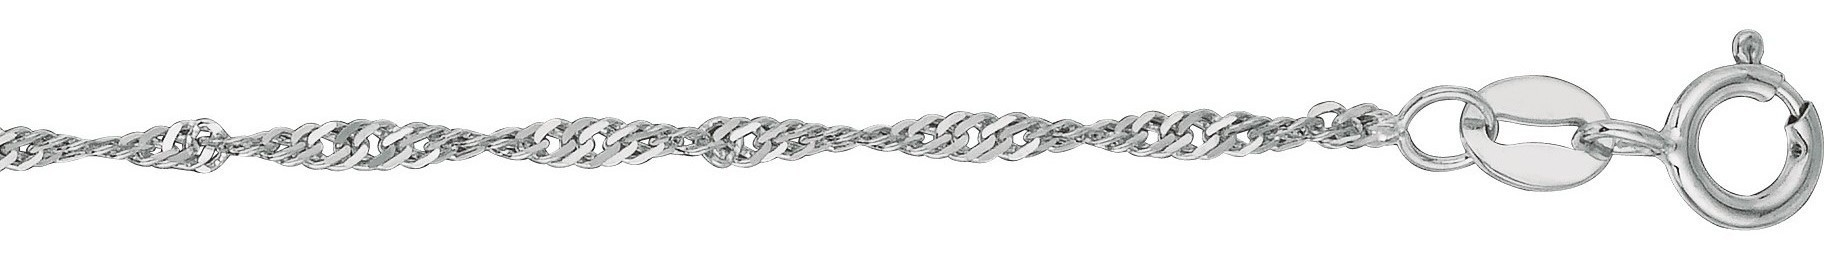 "16"" 10K White Gold 1.5mm (0.06"") Polished Diamond Cut Singapore Chain w/ Spring Ring Clasp"